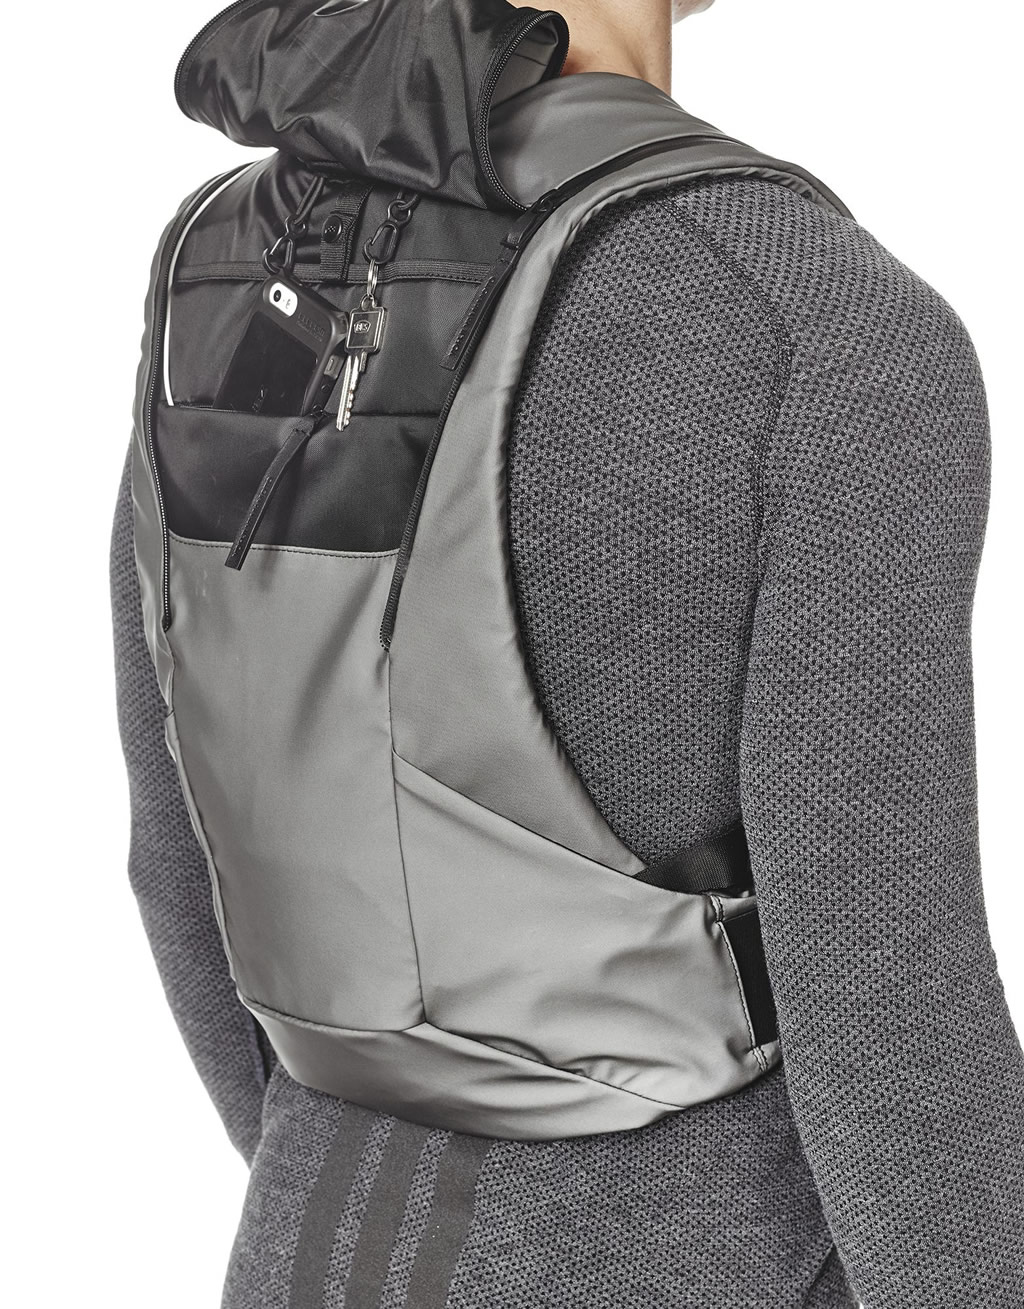 92851465d083 Y 3 Future Sport Backpack